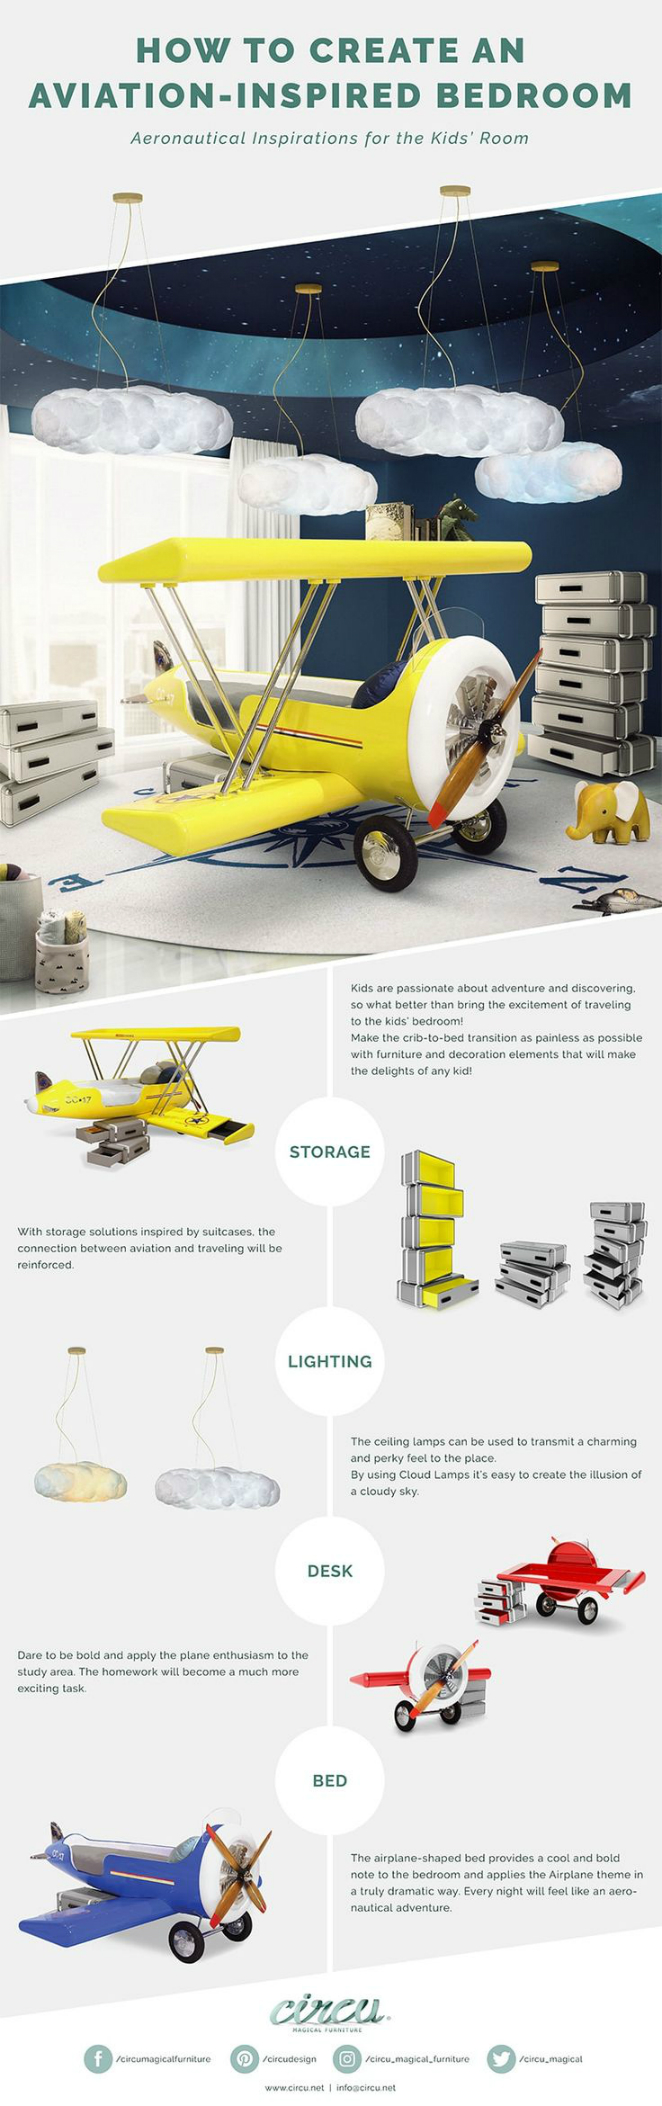 Inspired Bedroom Design inspired bedroom design How To Create An Airplane Inspired Bedroom Design How To Create An Airplane Inspired Bedroom Design 1